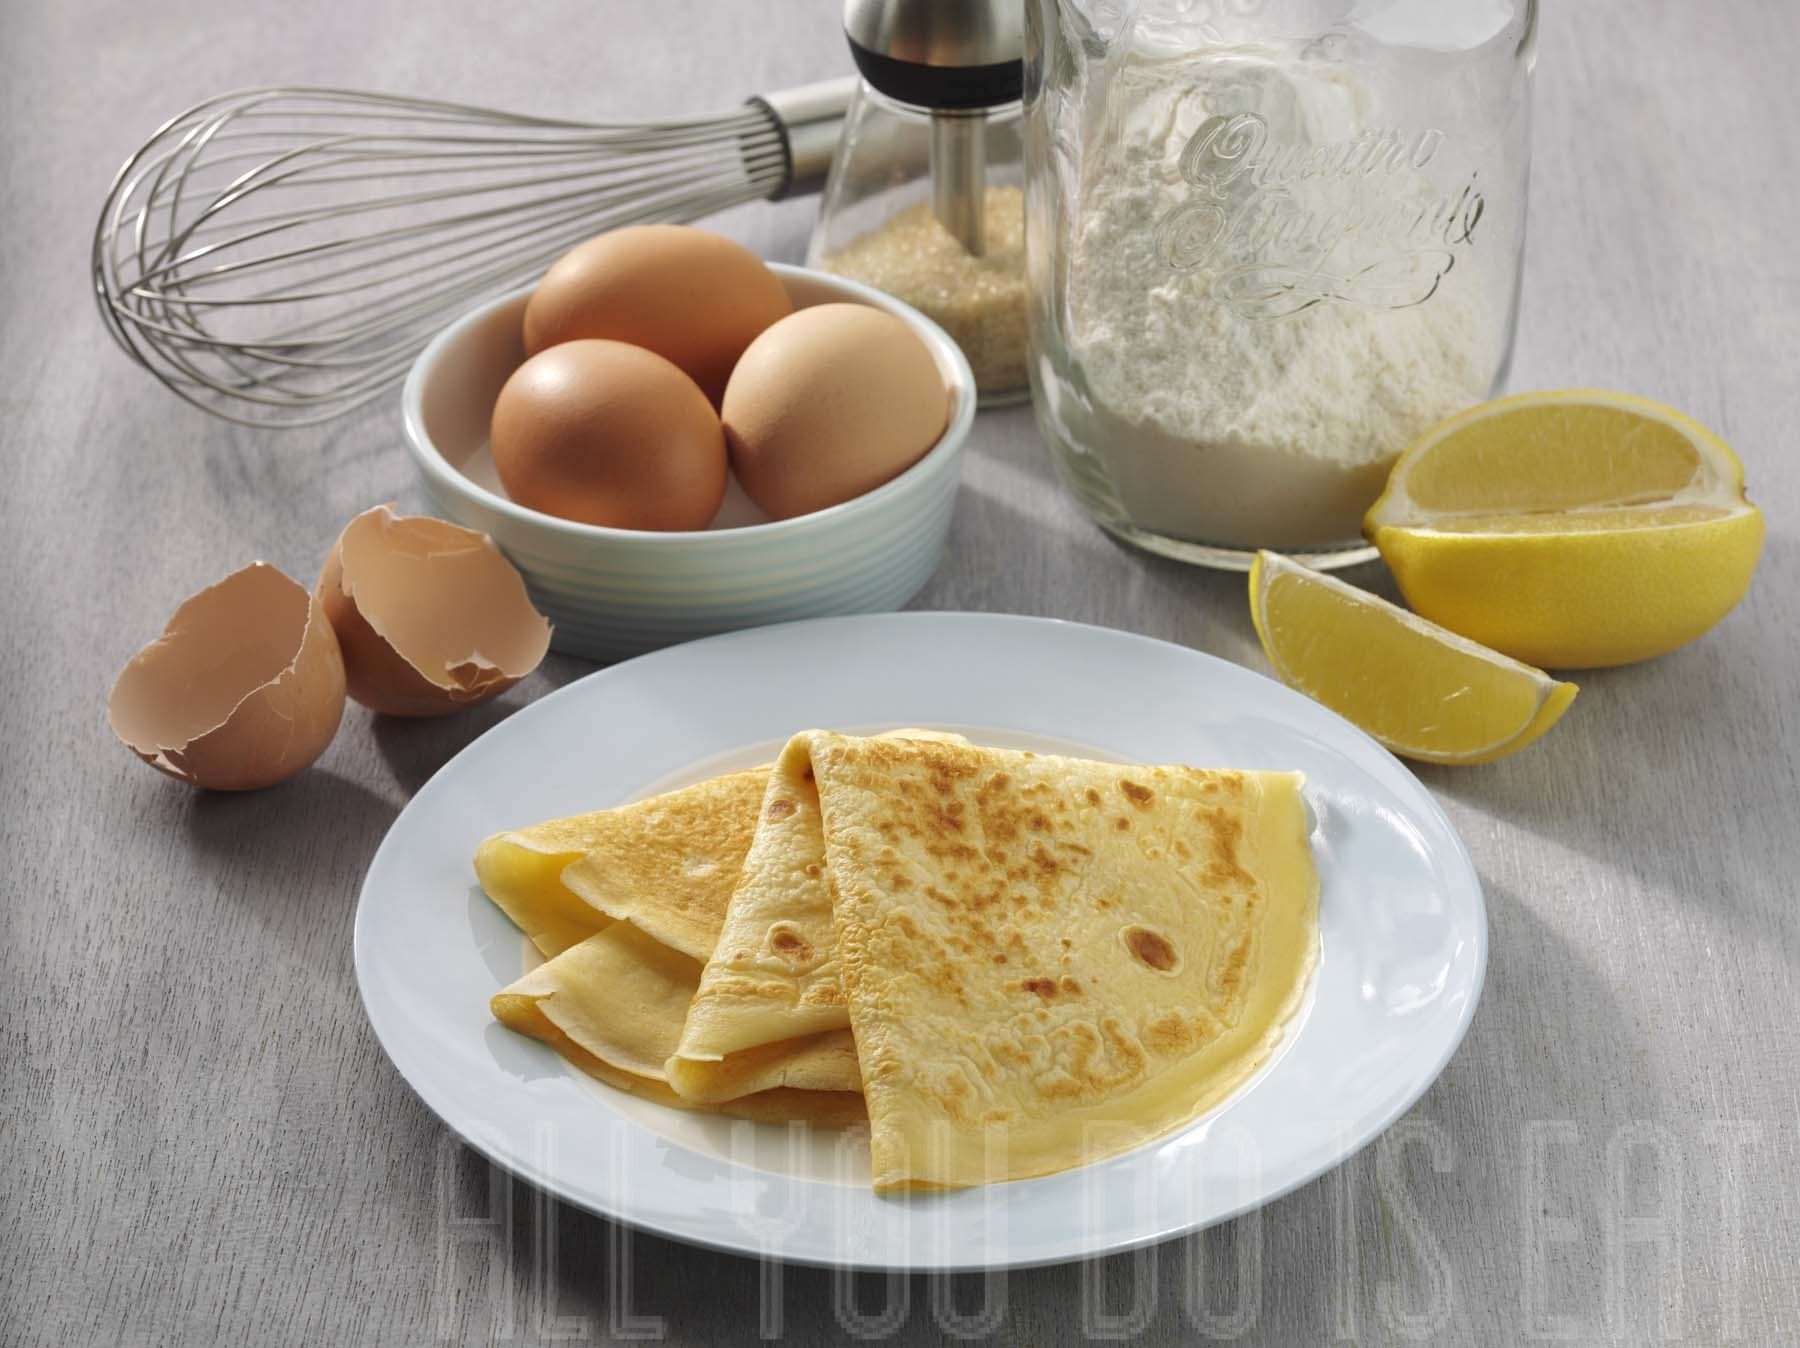 Pancake Tuesday Crepes + a Giveaway